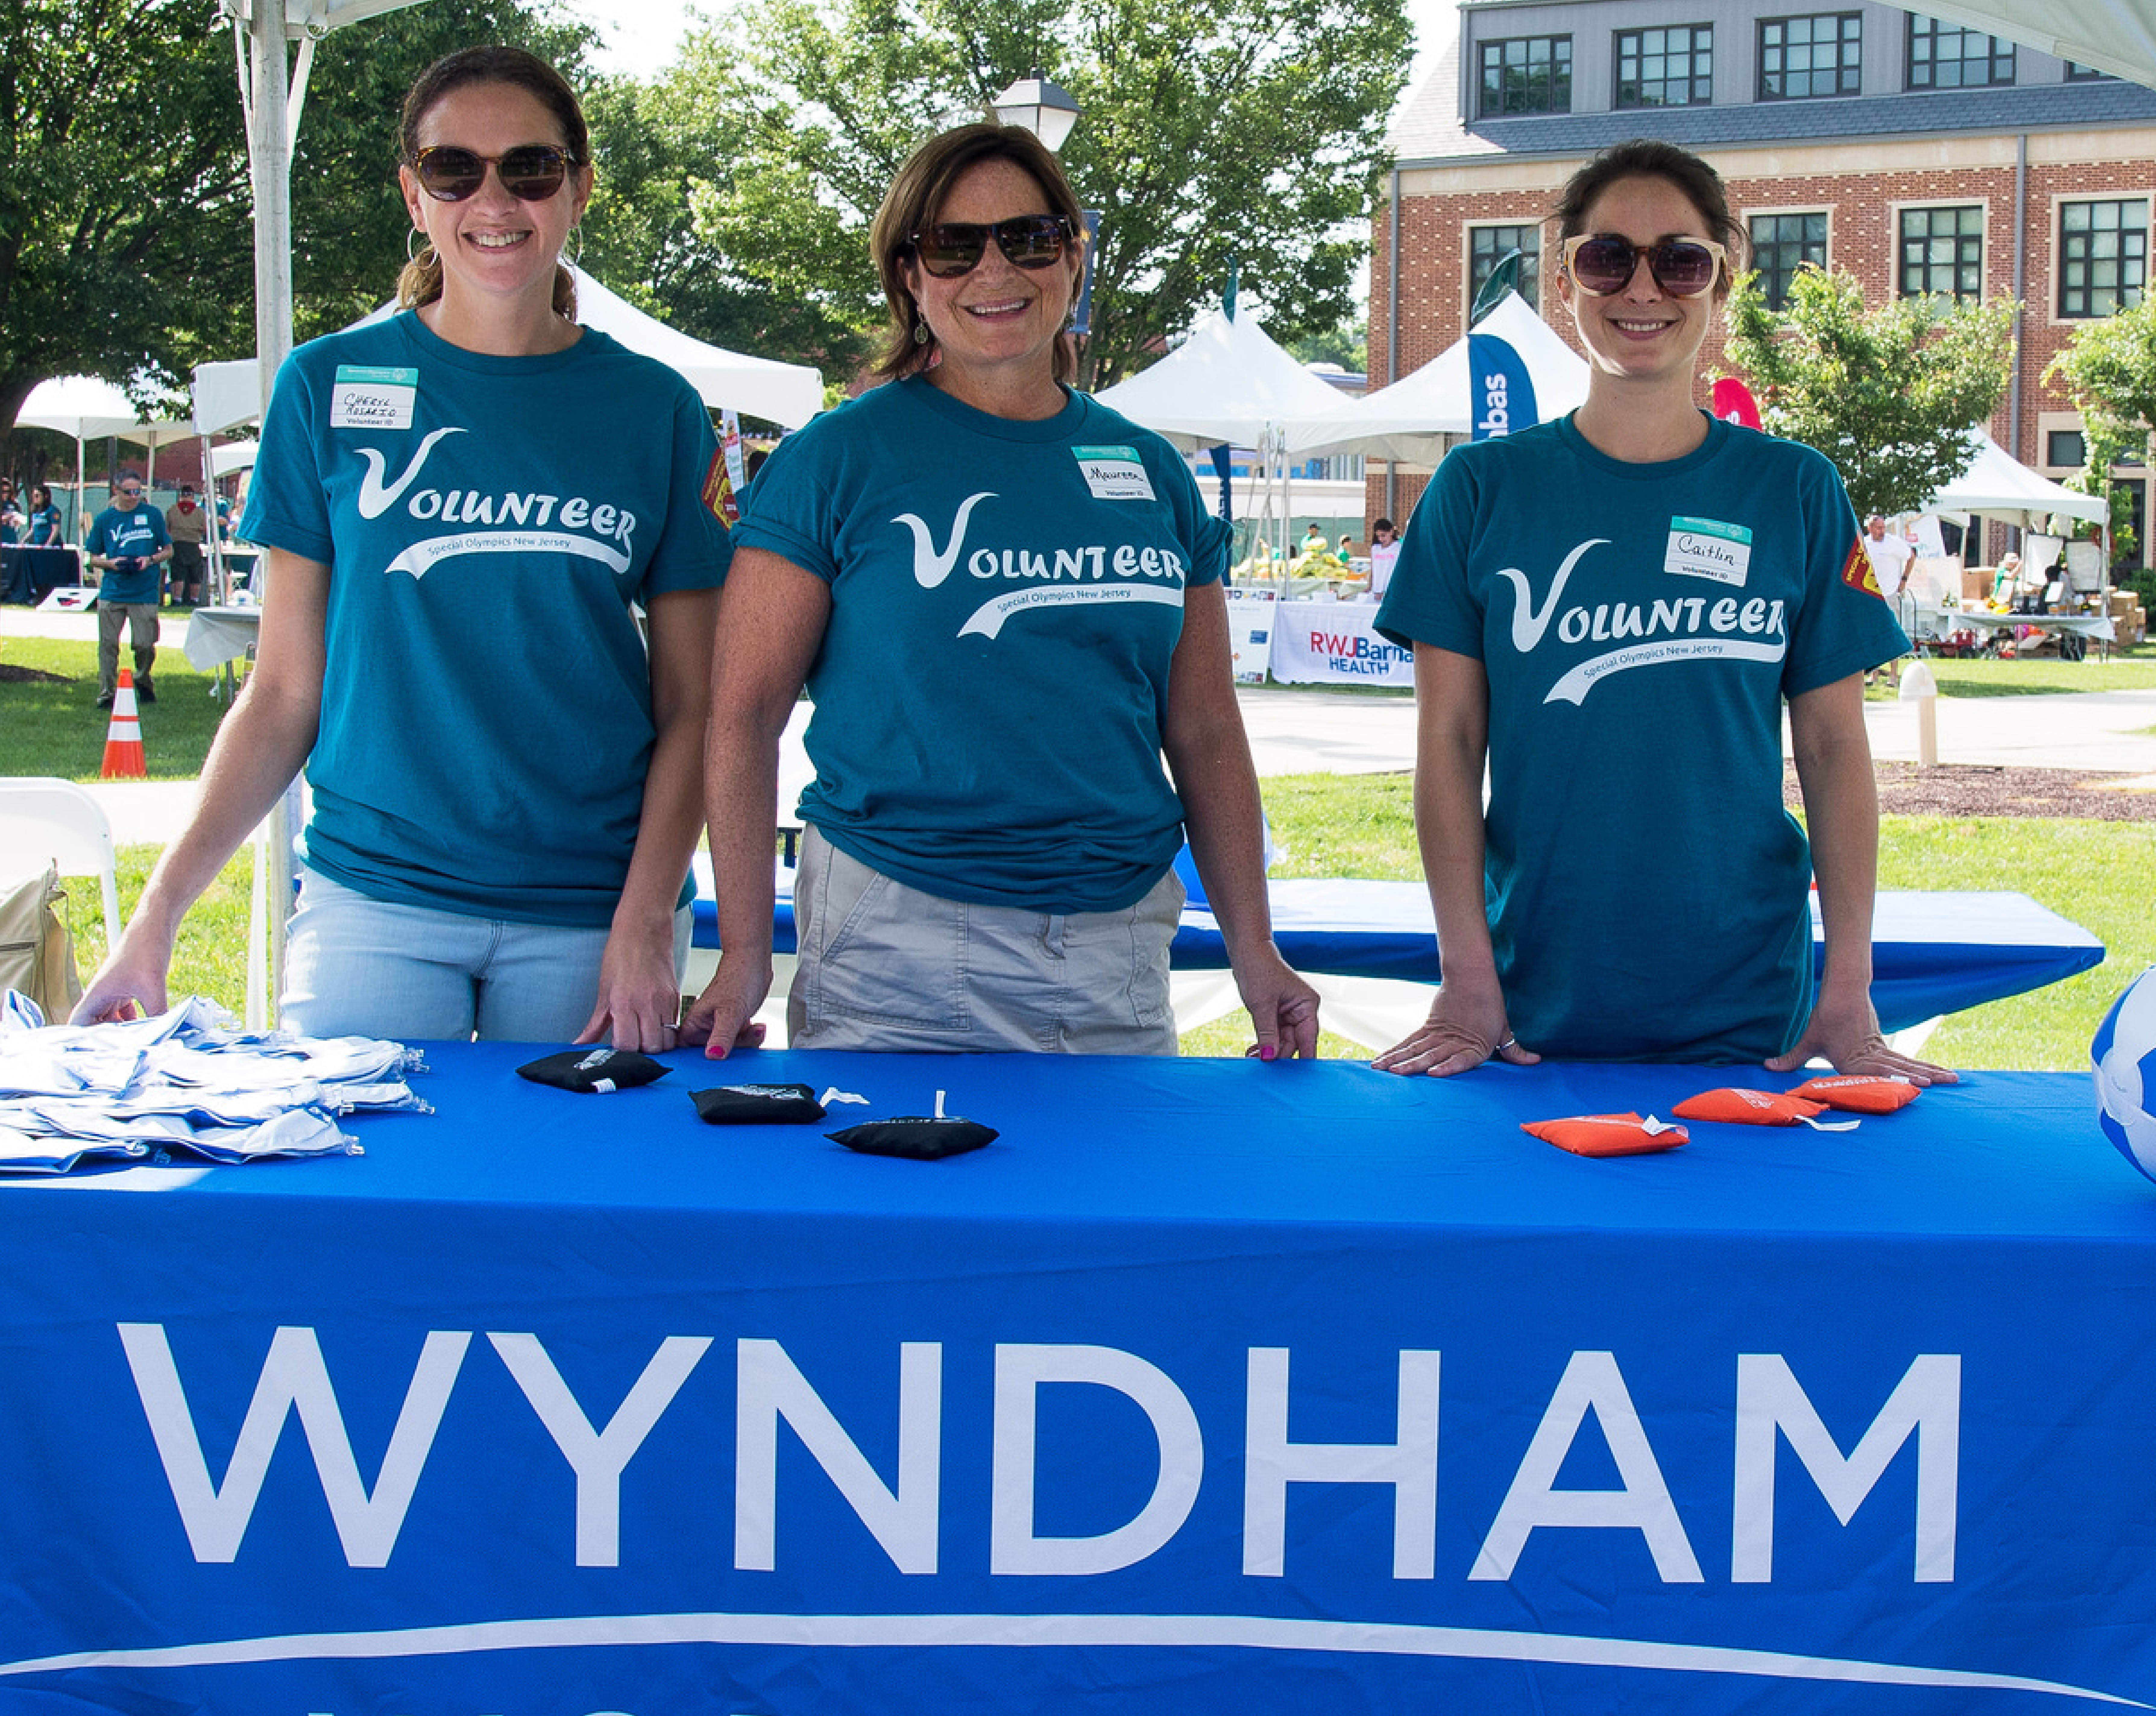 Wyndham Hotels + Resorts | Special Olympics New Jersey